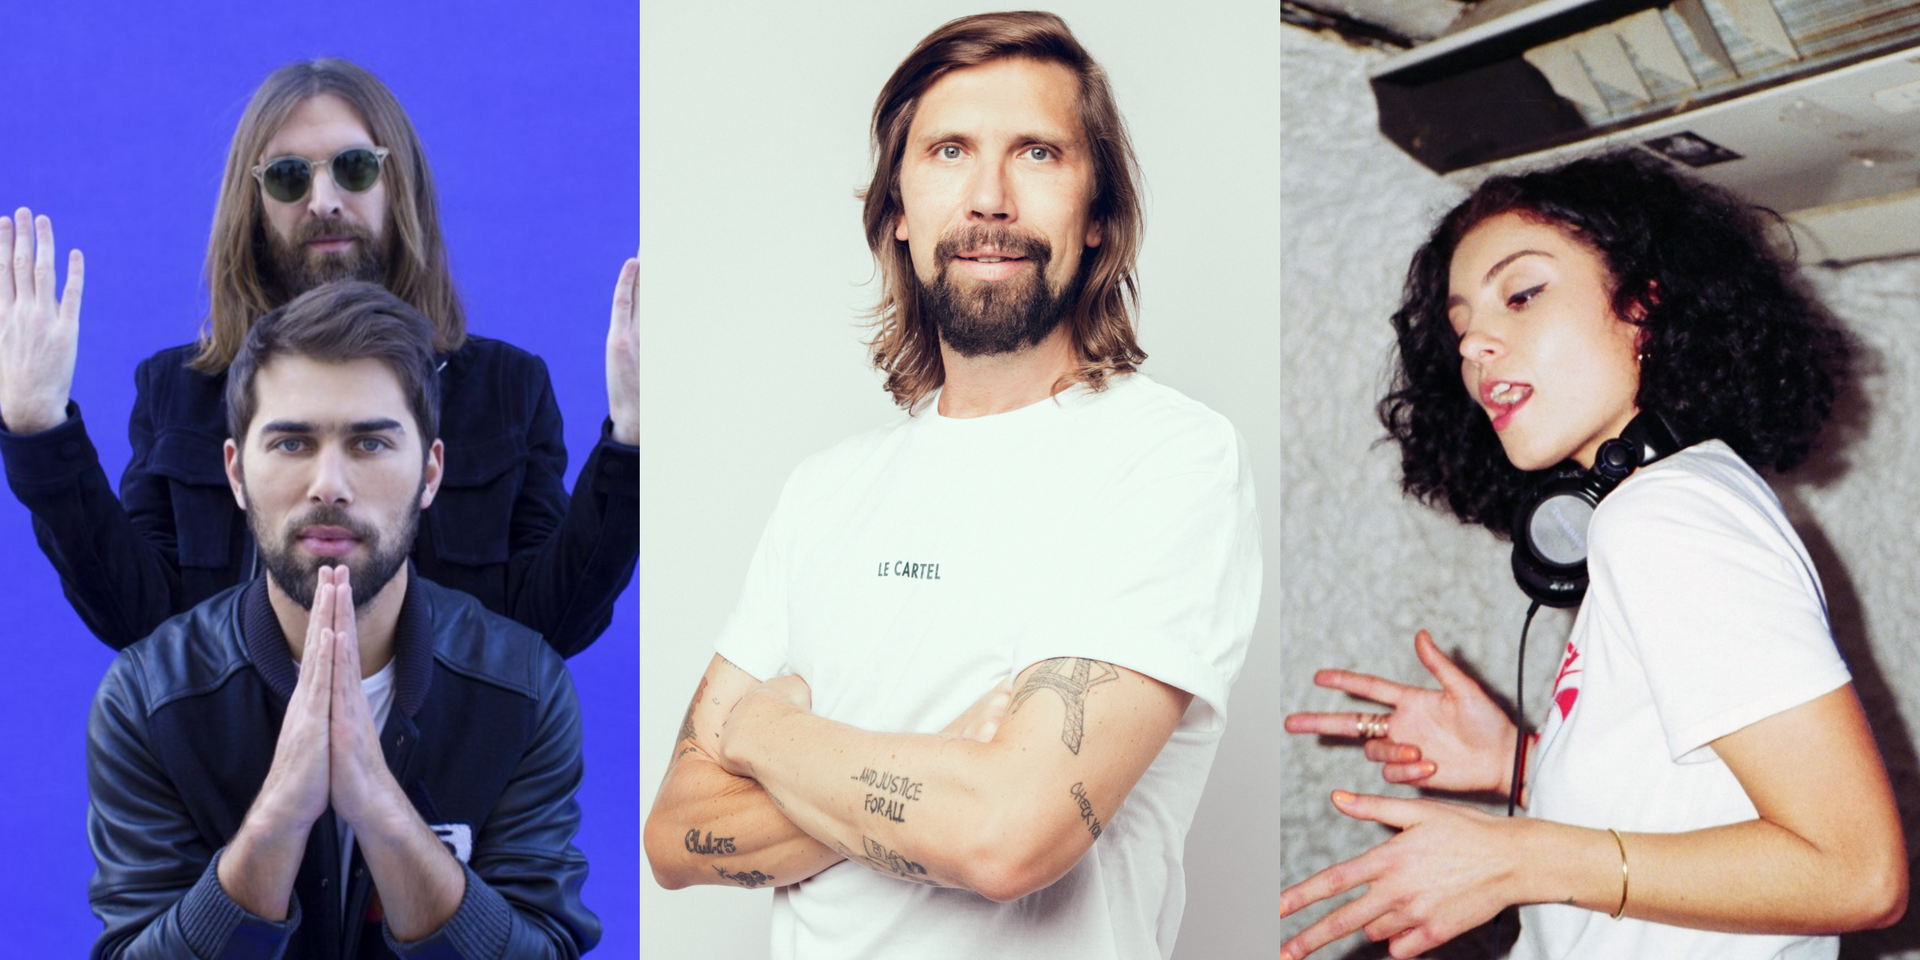 Collective Minds announces Ed Banger Takeover featuring Busy P, Breakbot & Irfane, YASMIN and more at Zouk Singapore this December